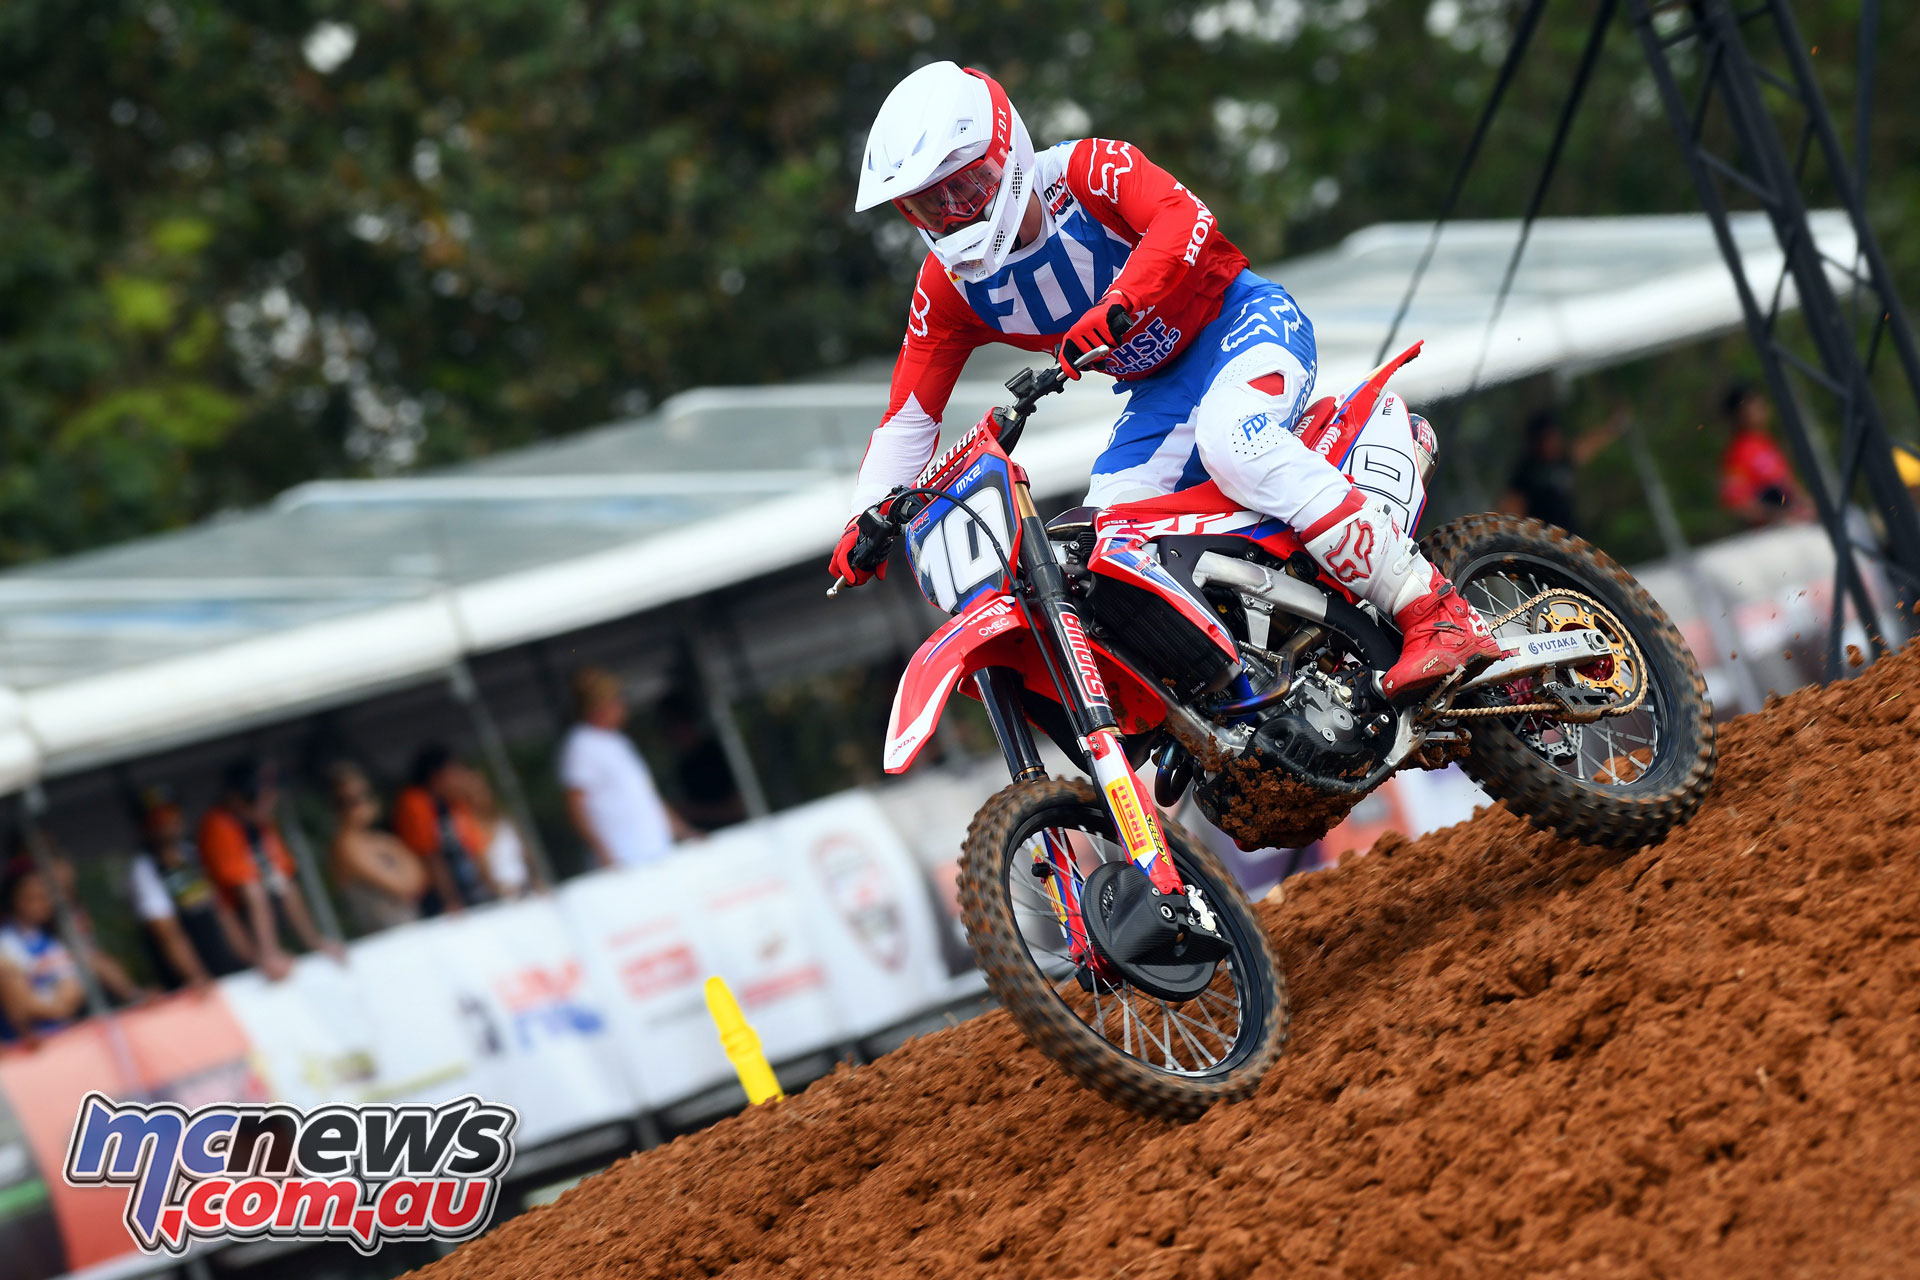 MXGP Indonesia MX Vlaanderen action